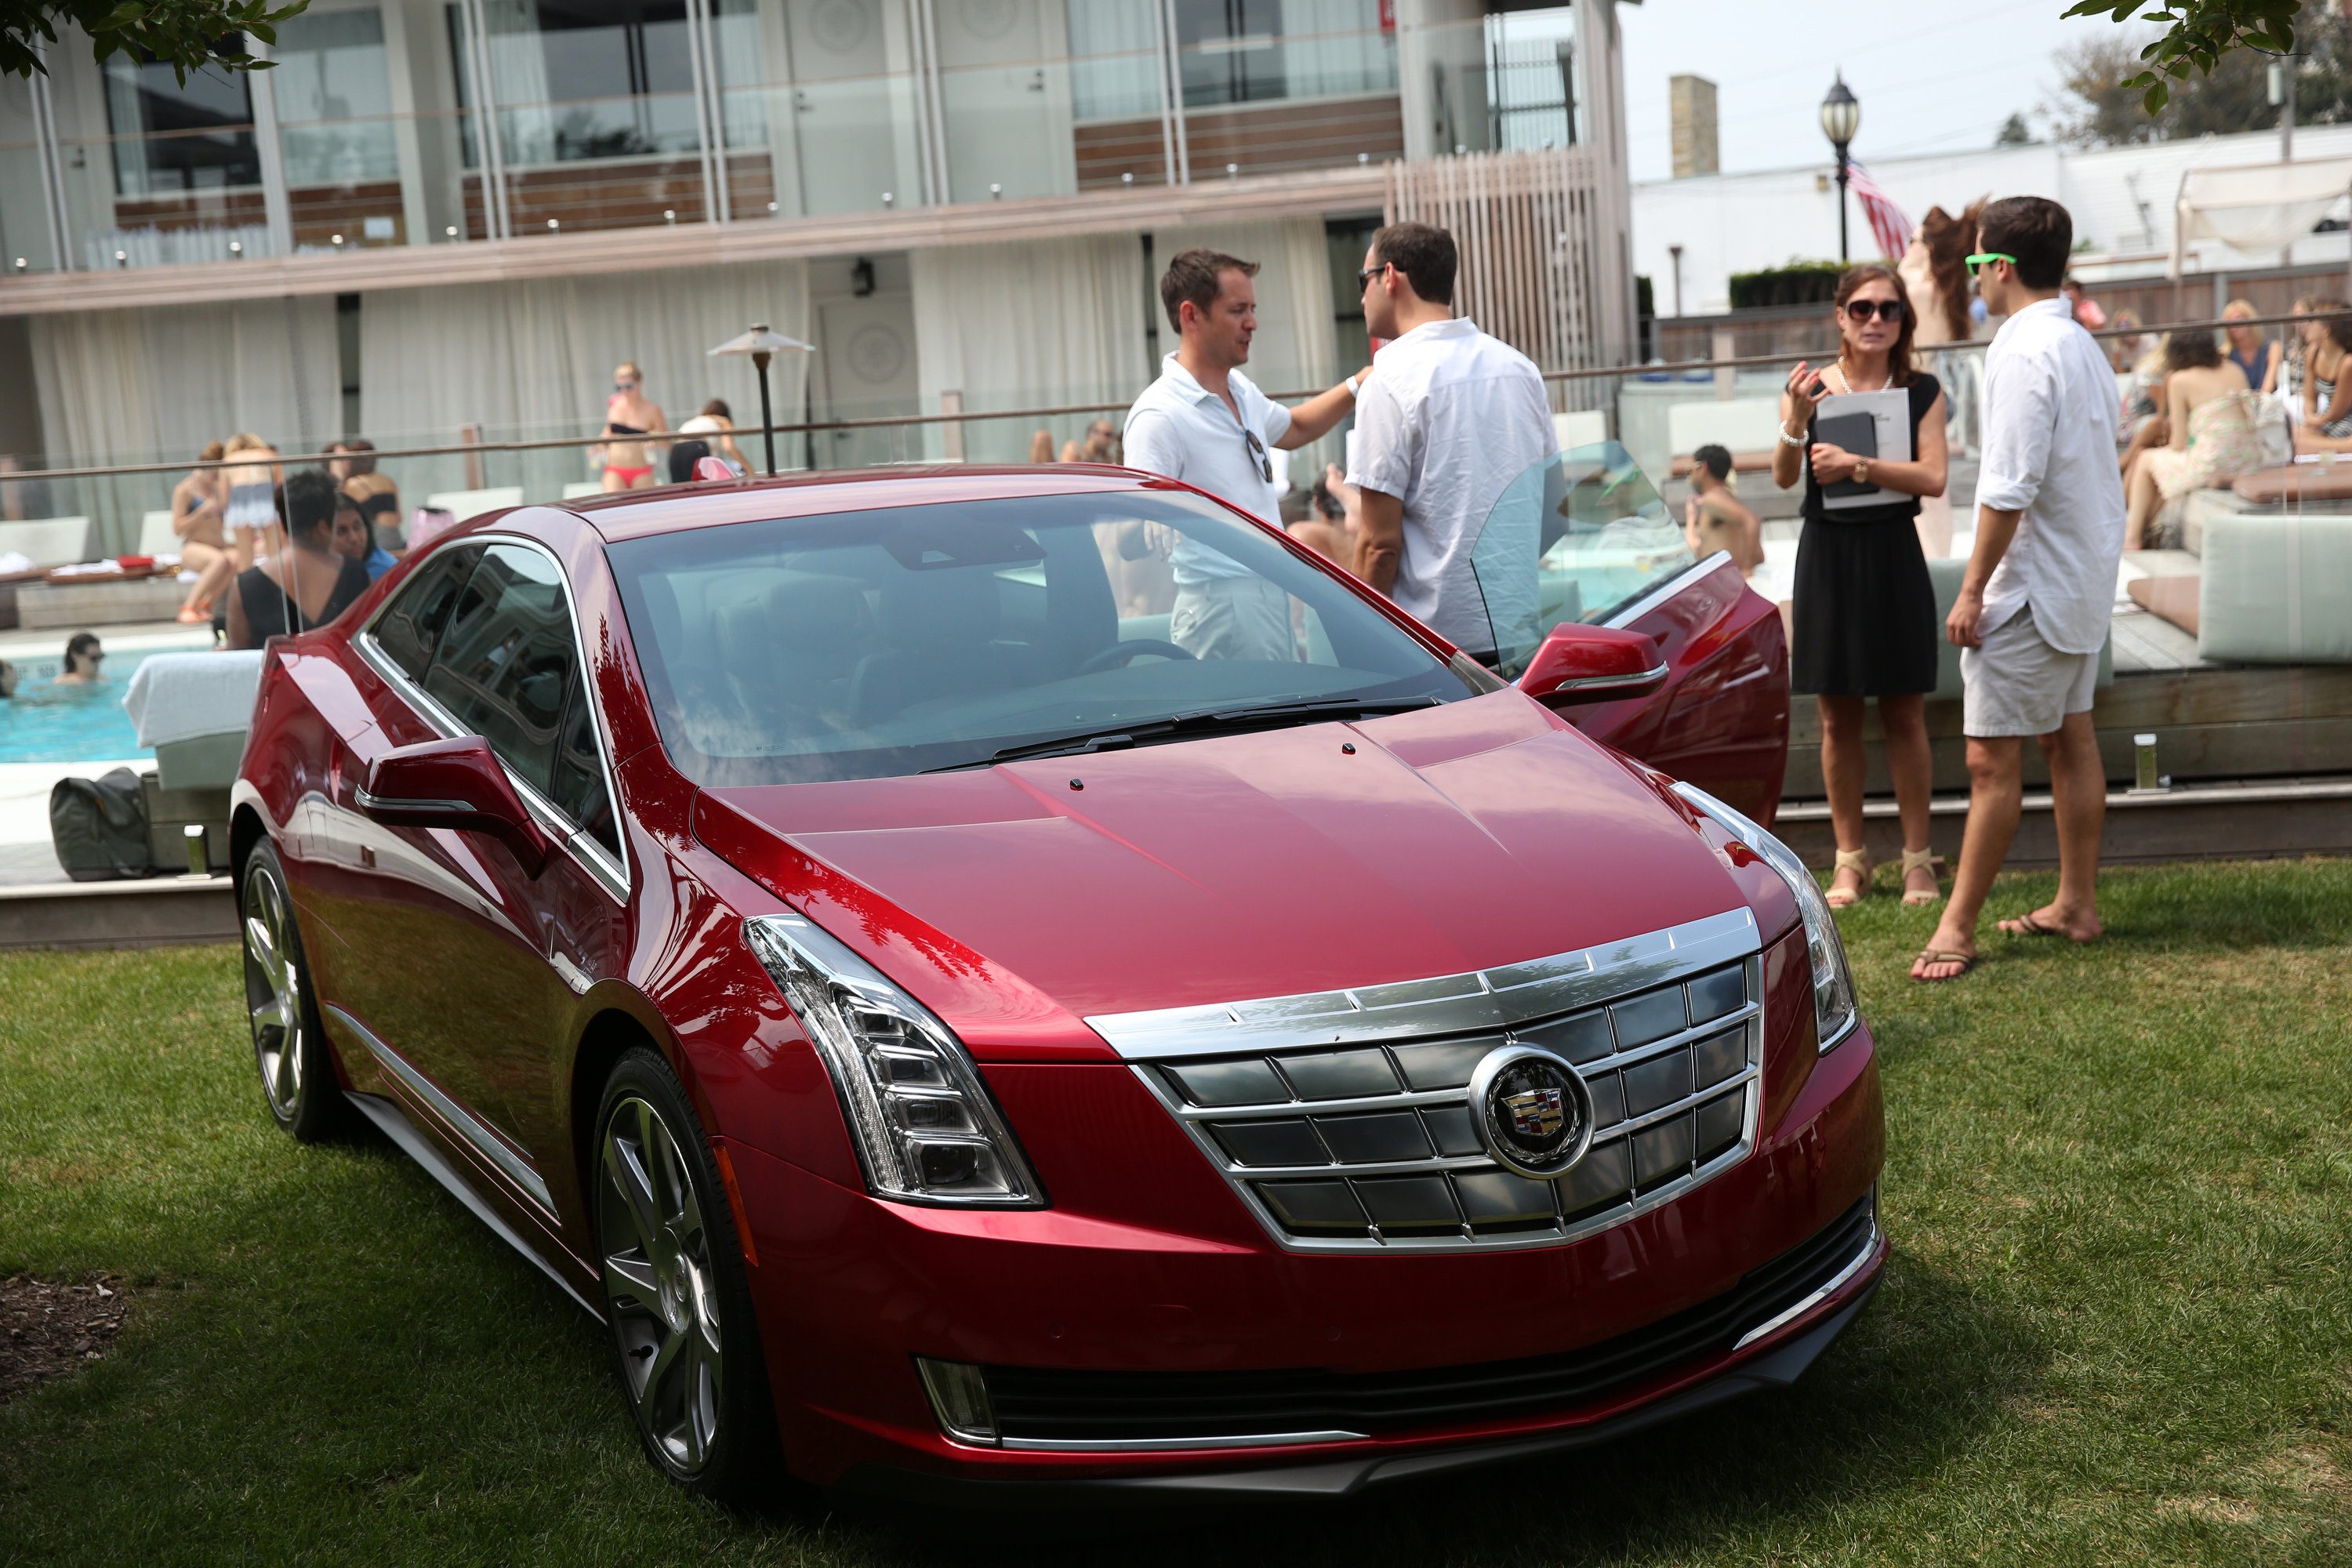 msrp cadillac tuned version made us voltec chevrolet in elr is of s img drivetrain for sale powertrain re used a volt the units erev